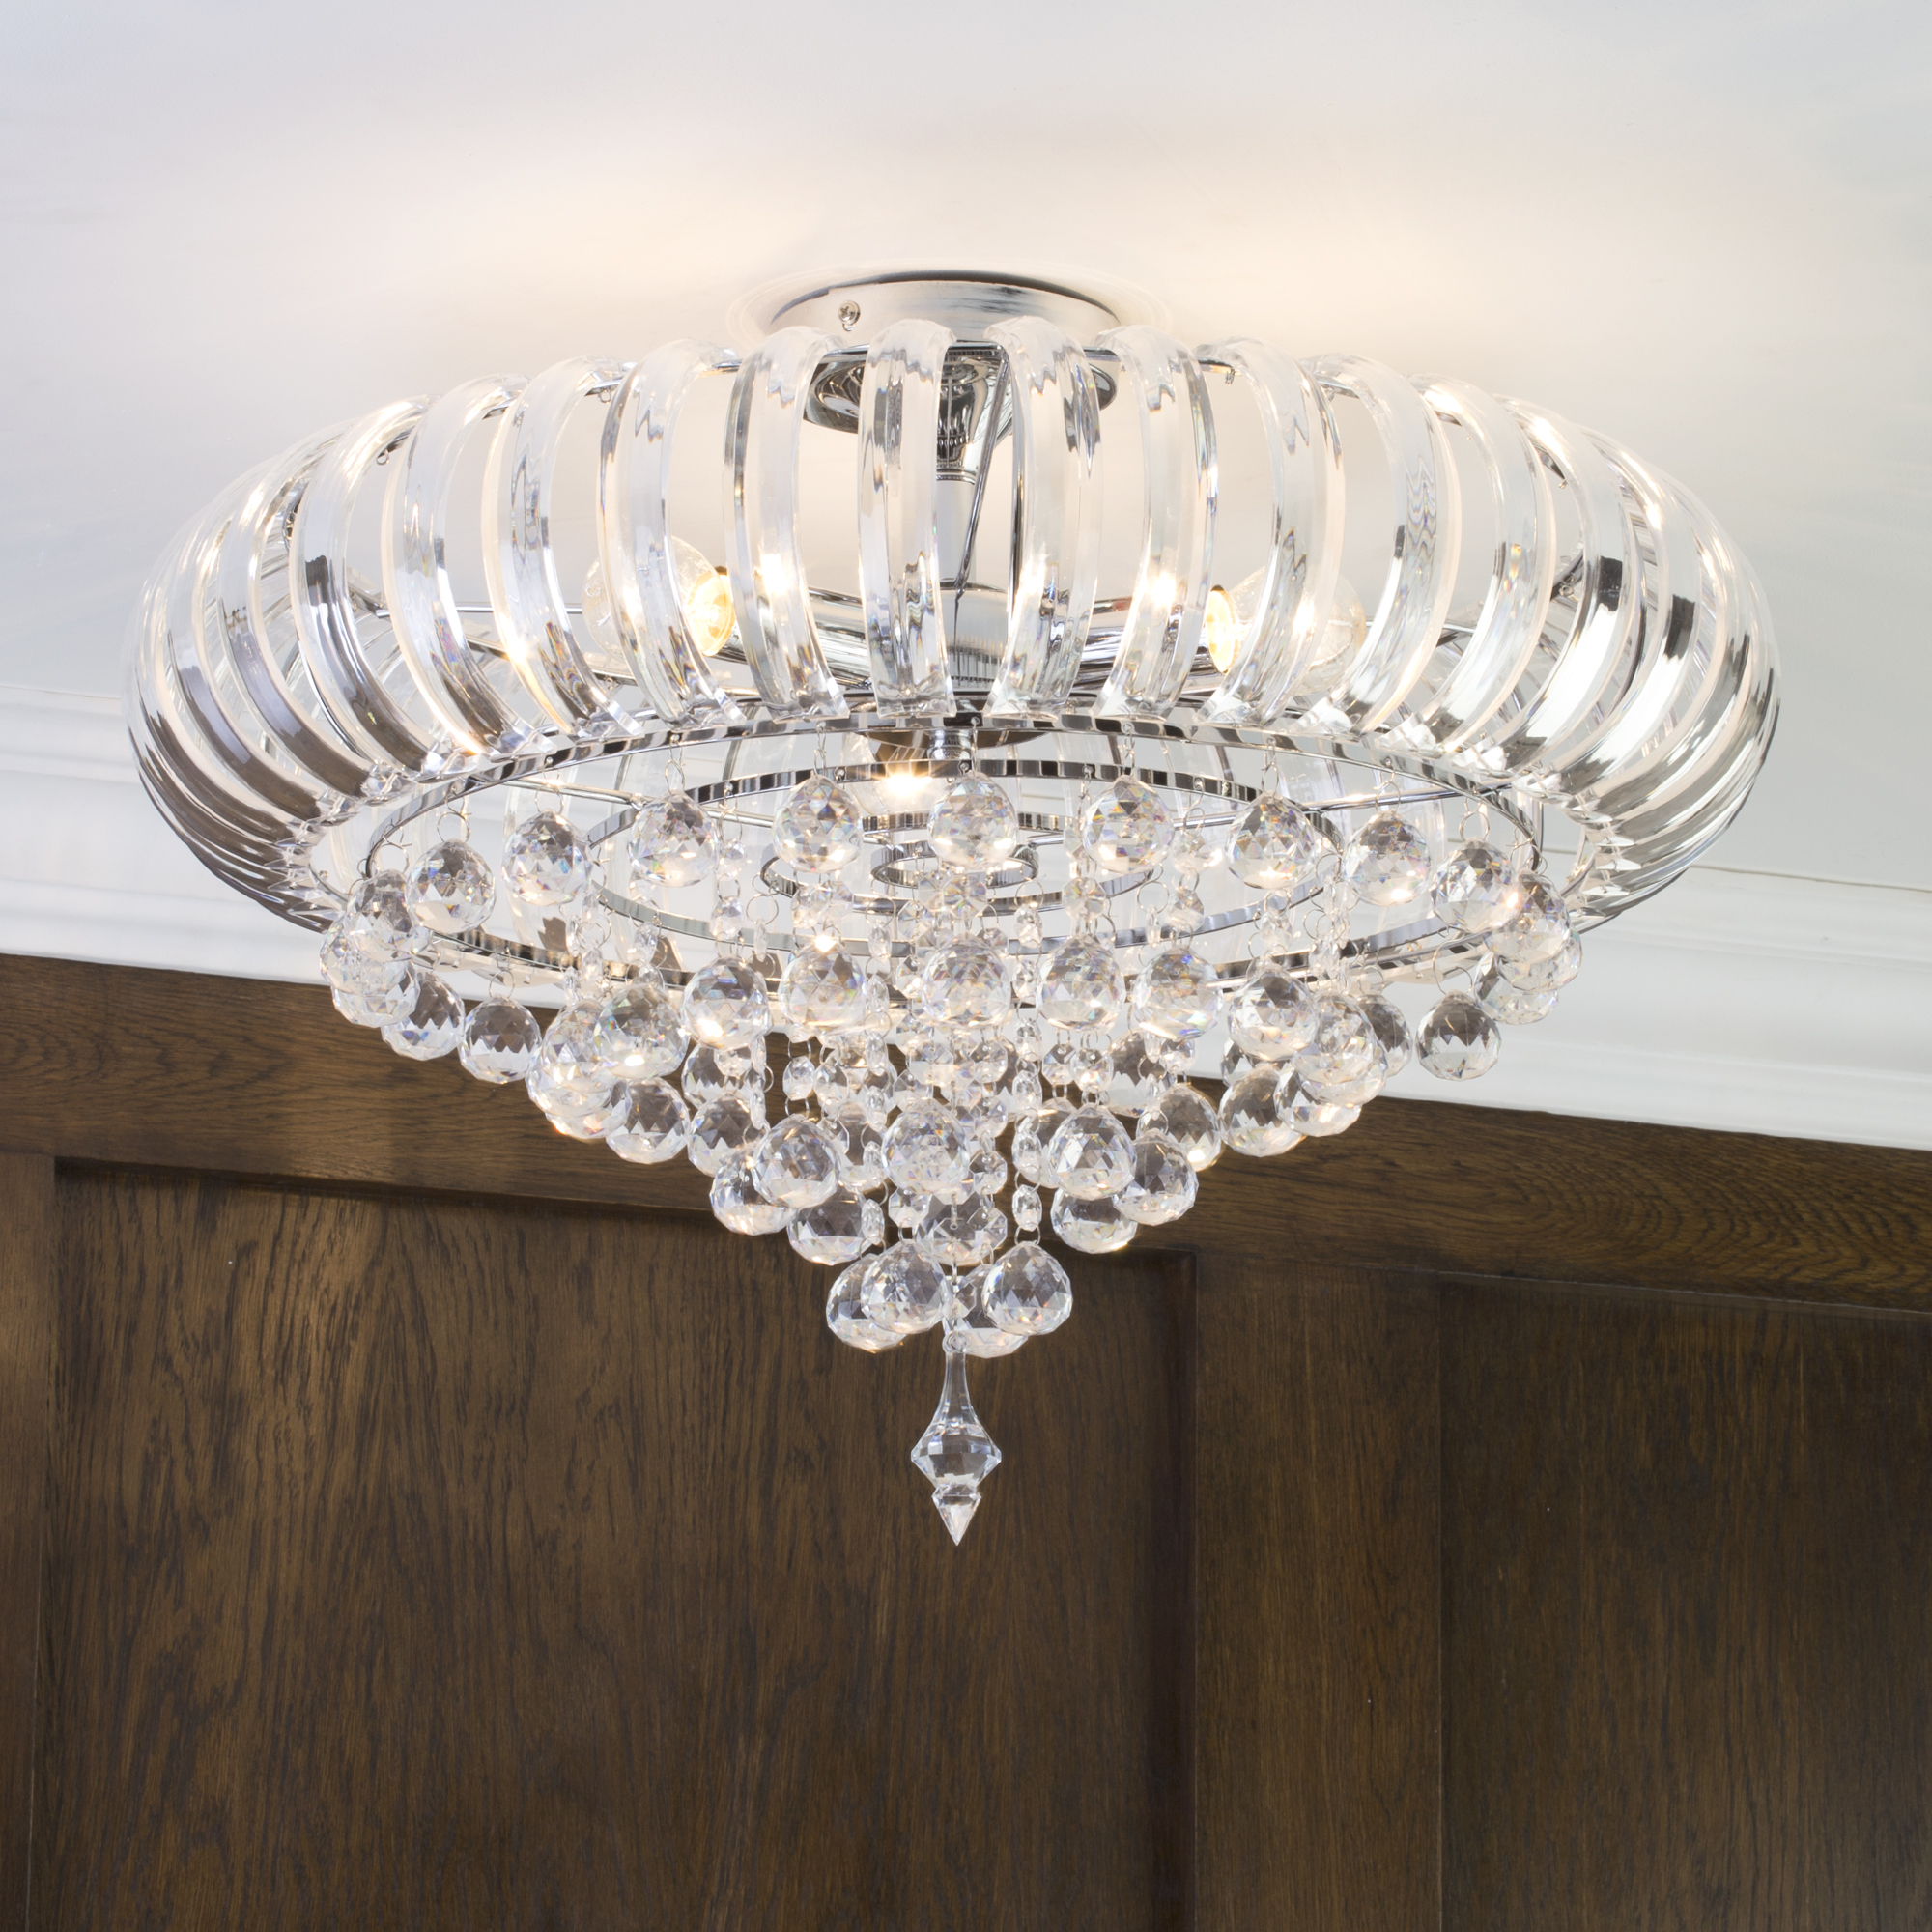 Crystal Droplets For Chandeliers